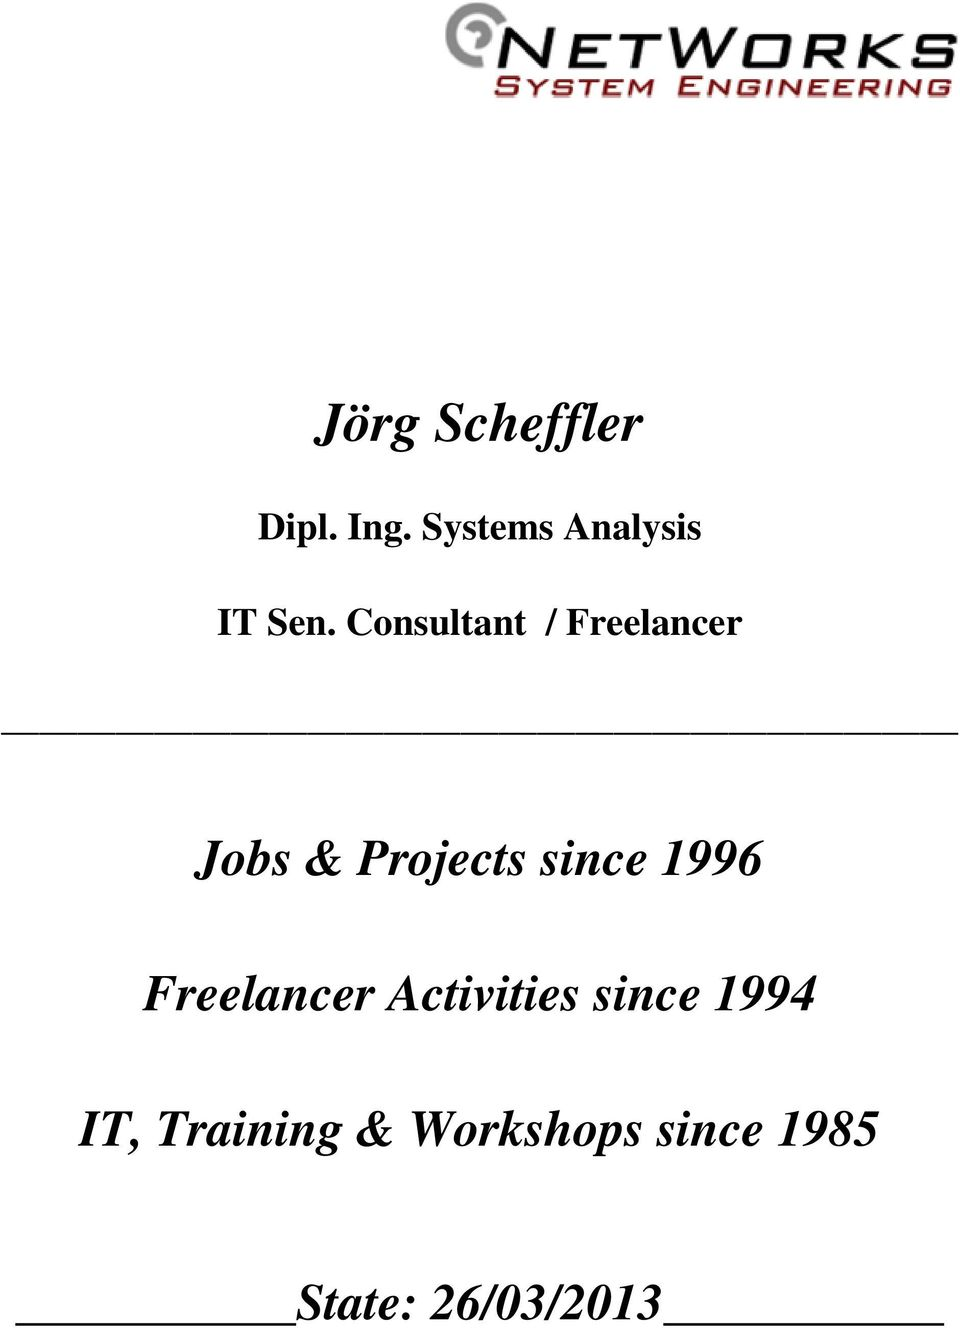 since 1996 Freelancer Activities since 1994